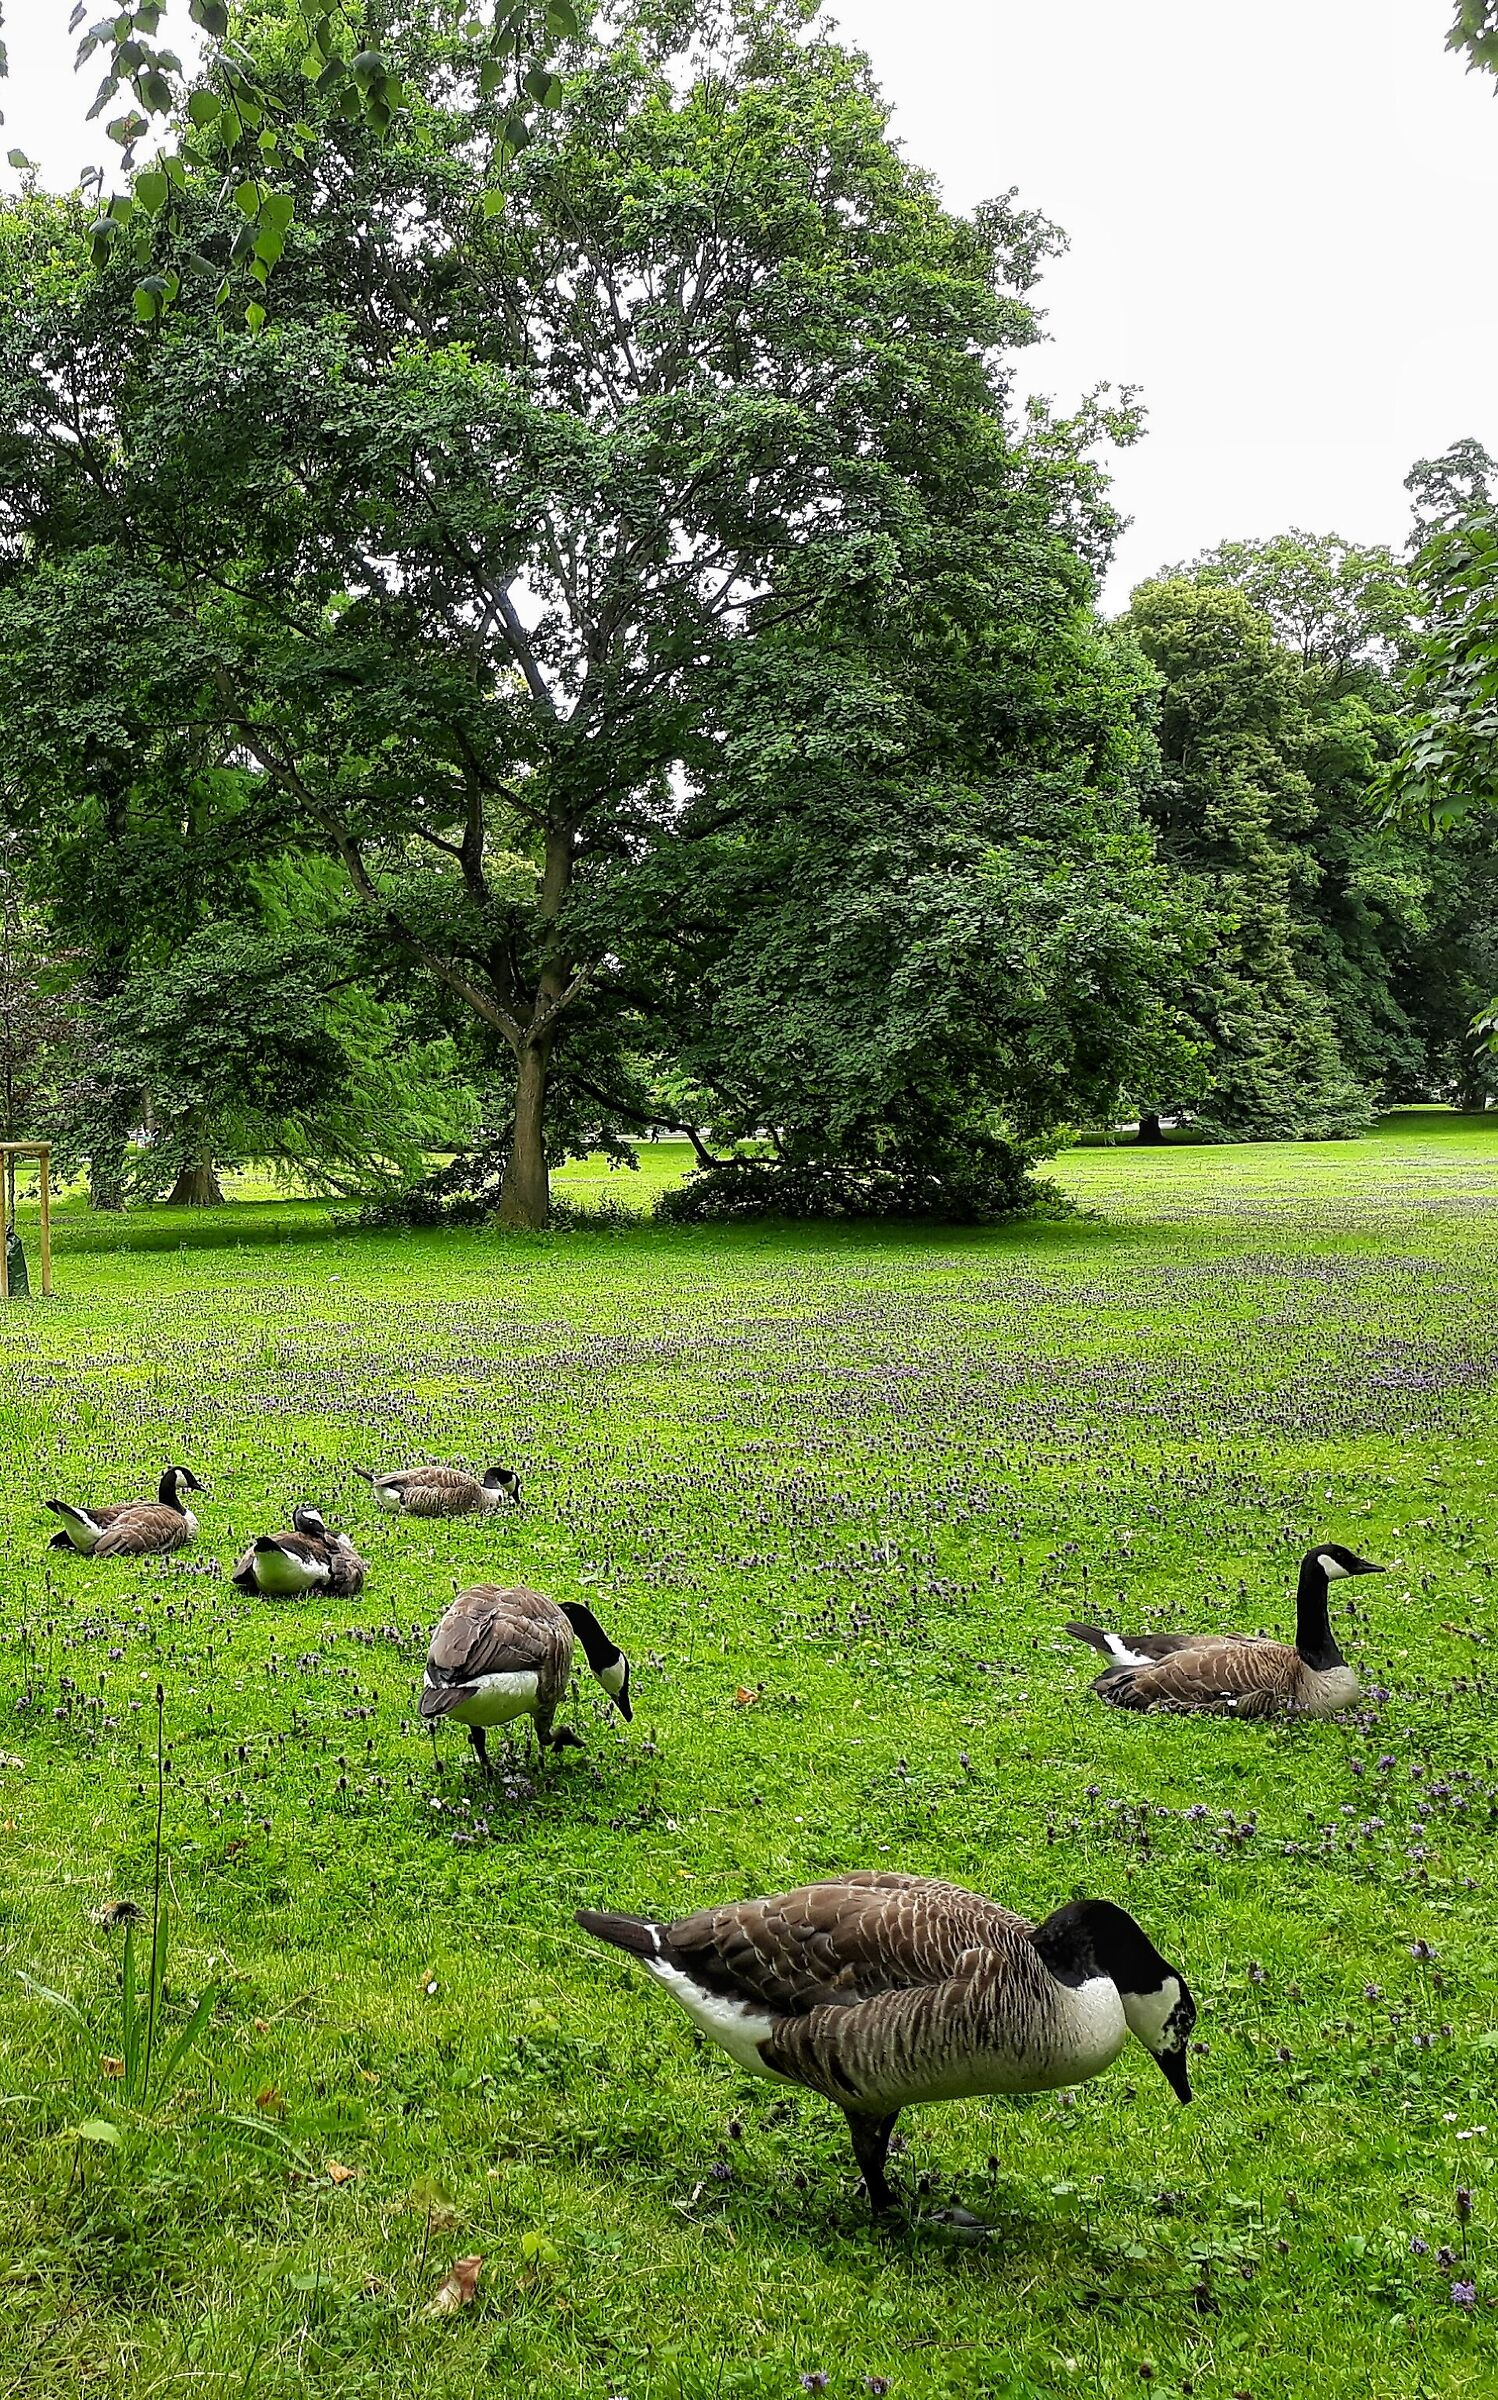 Canada geese...